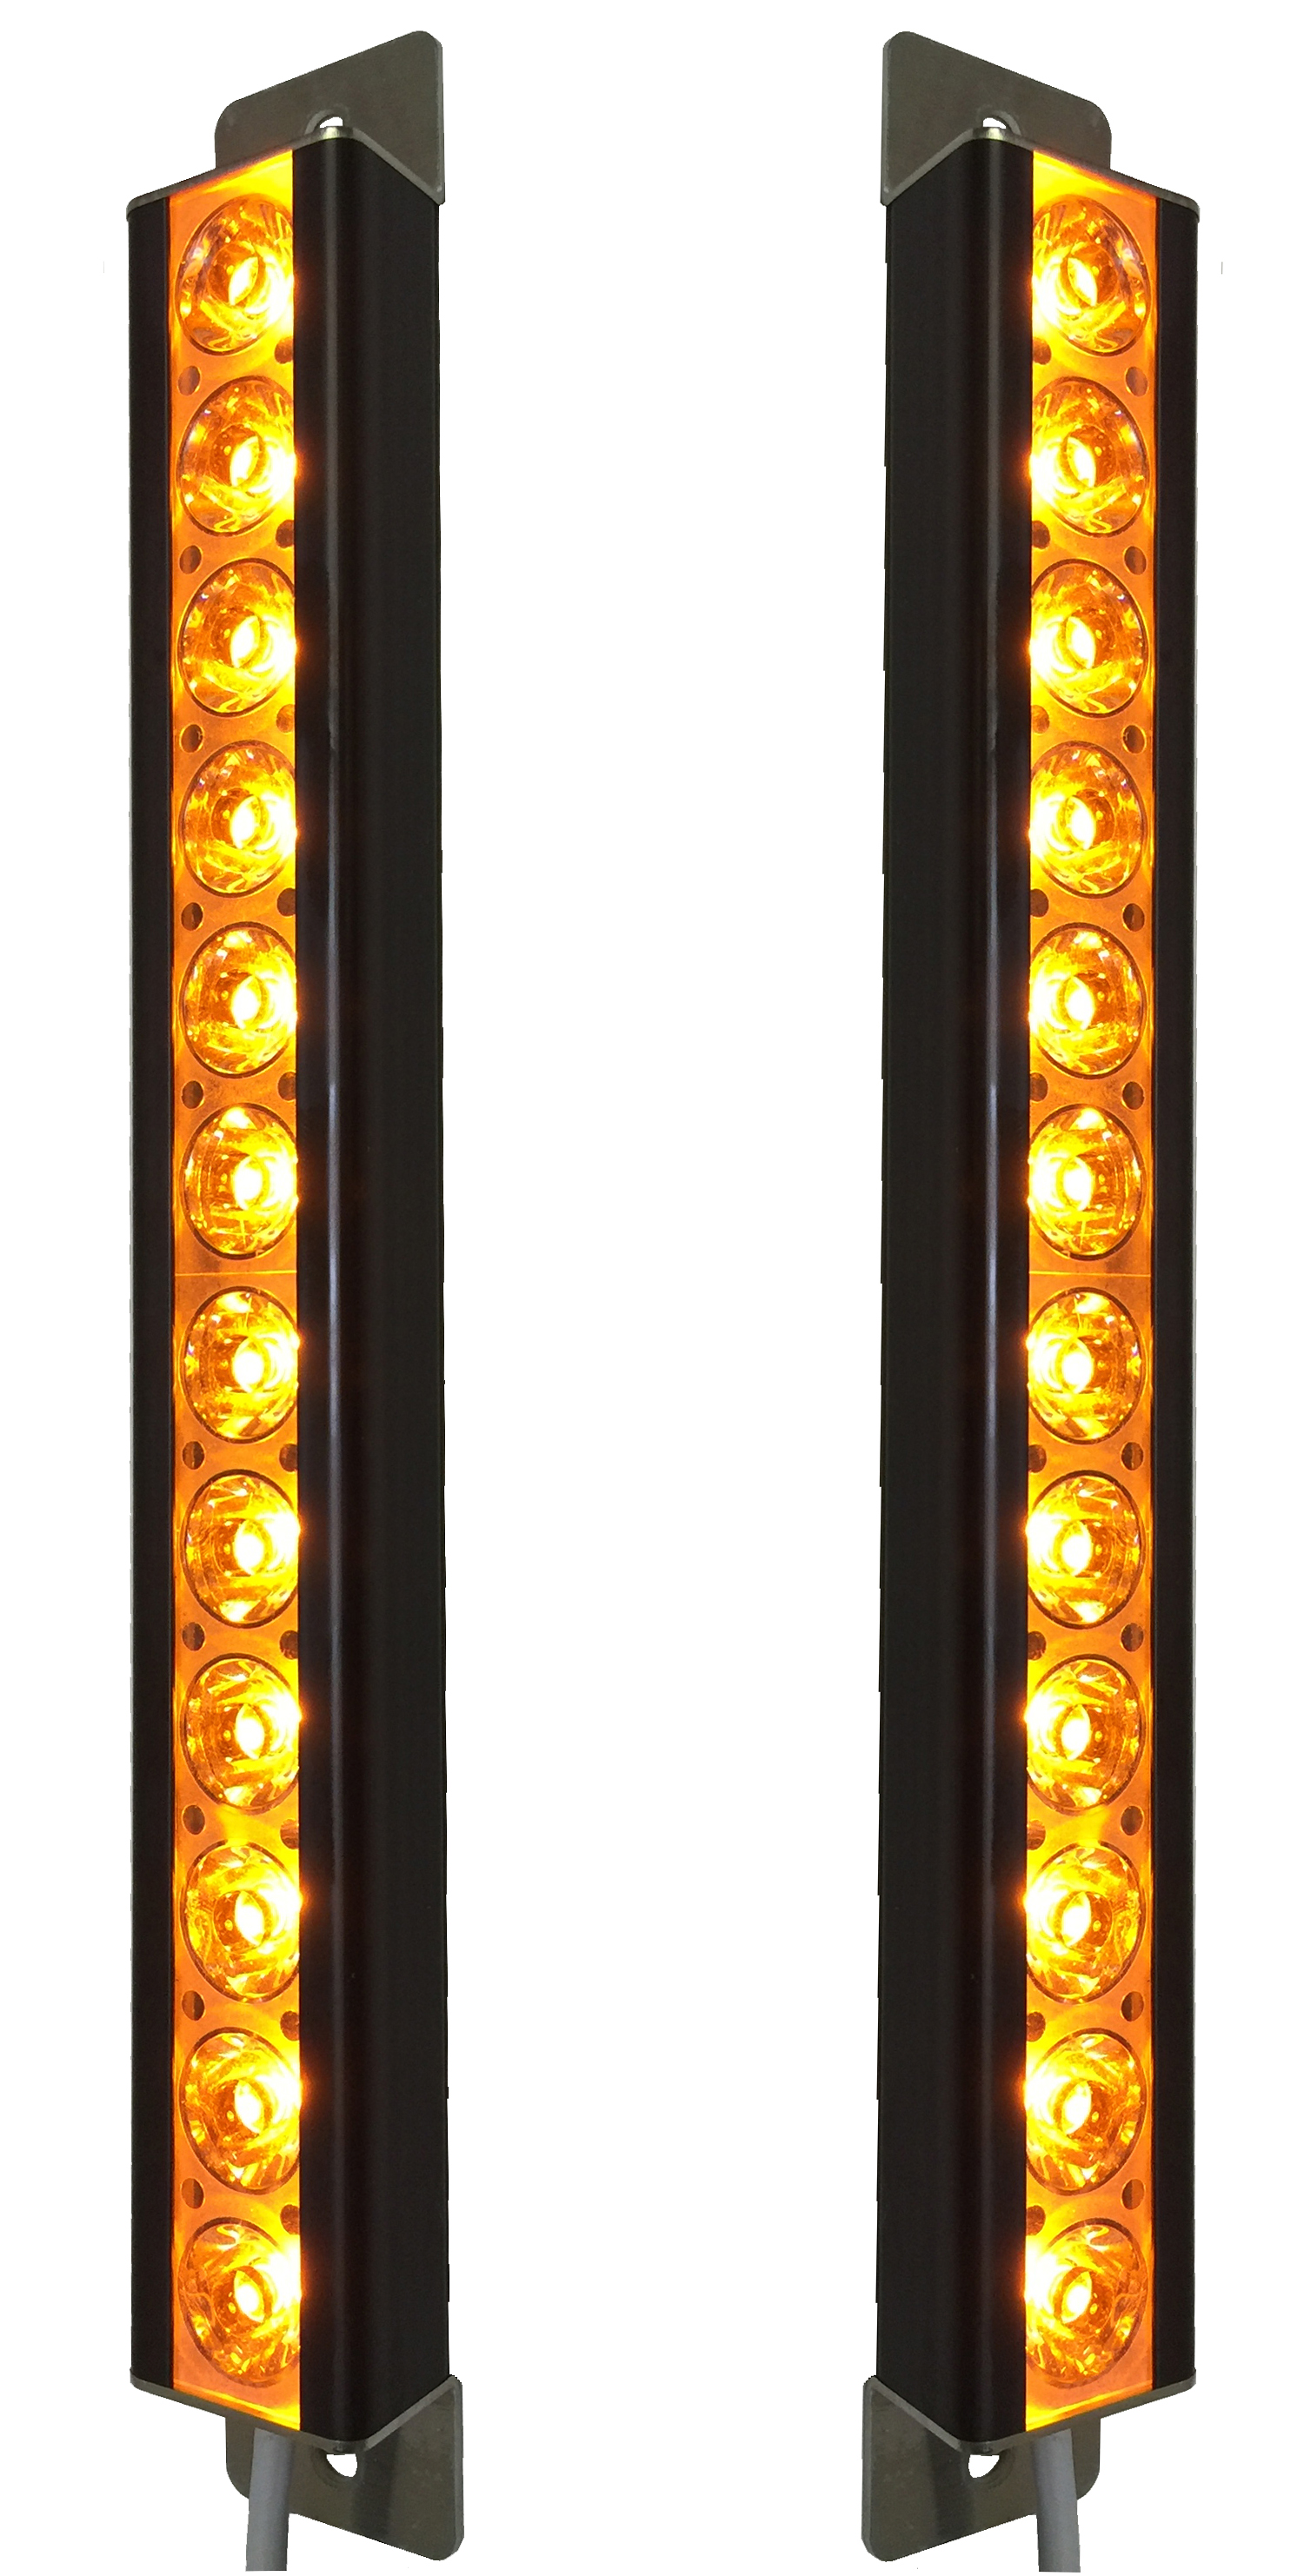 iControls GL100 LED Guide Lights